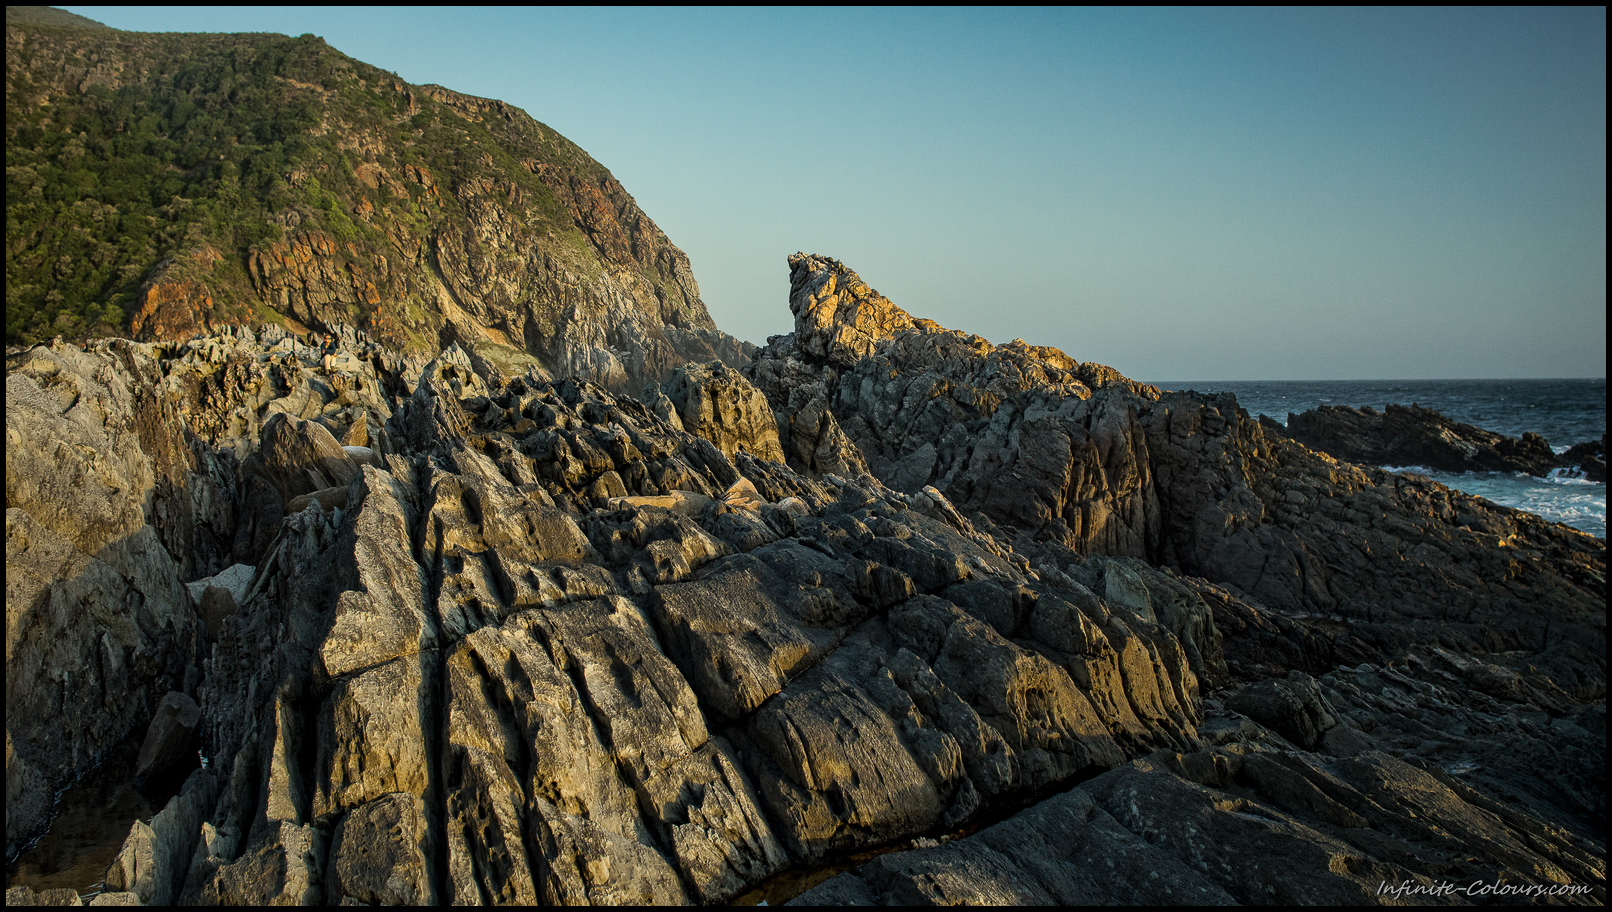 ^The rocks at Oakhurst hut are a big playground for anybody loving the outdoors and provide nice sunset views